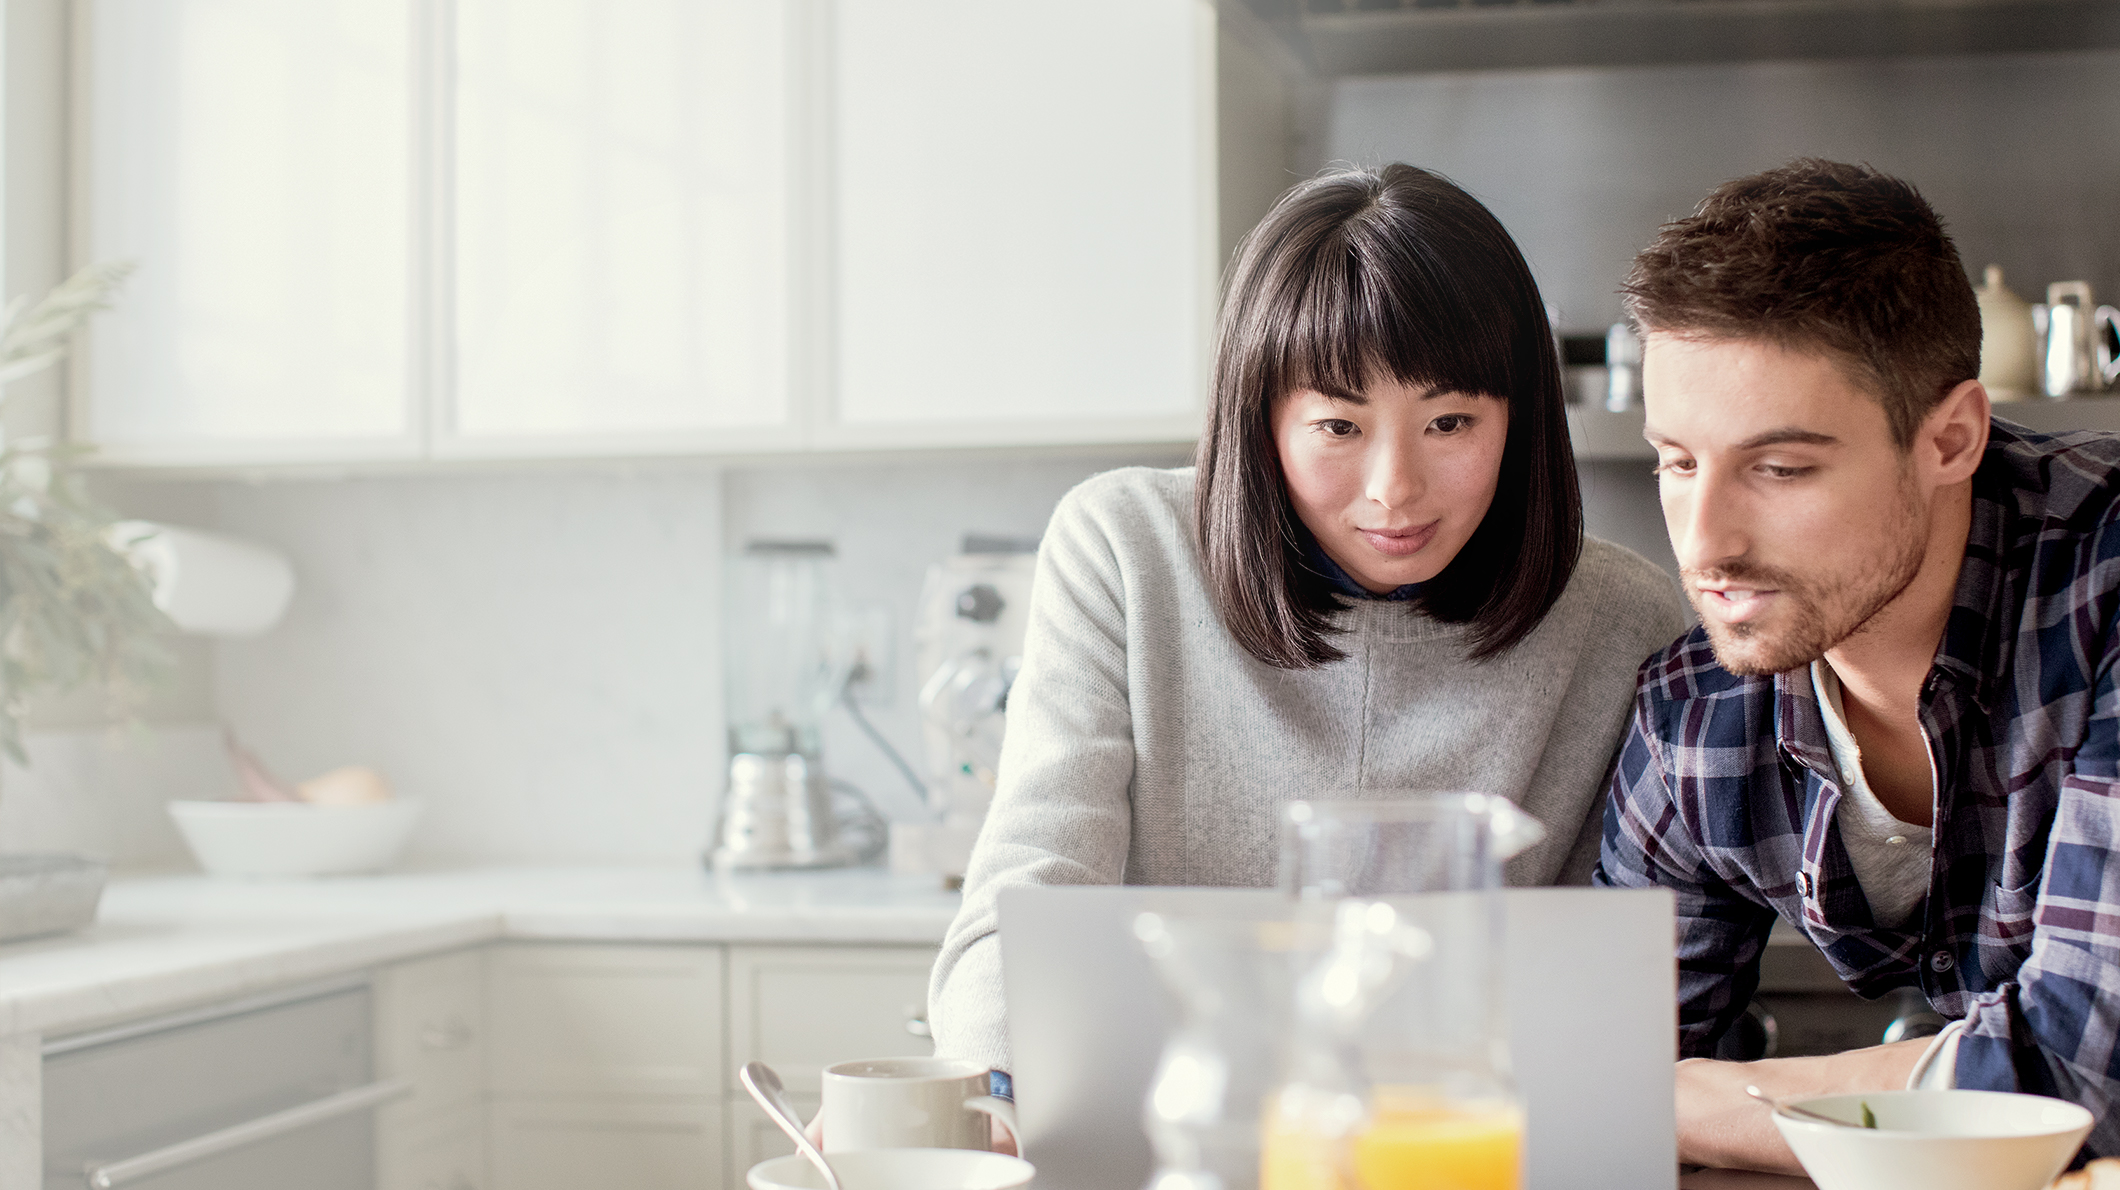 A woman and a man look at a PC screen